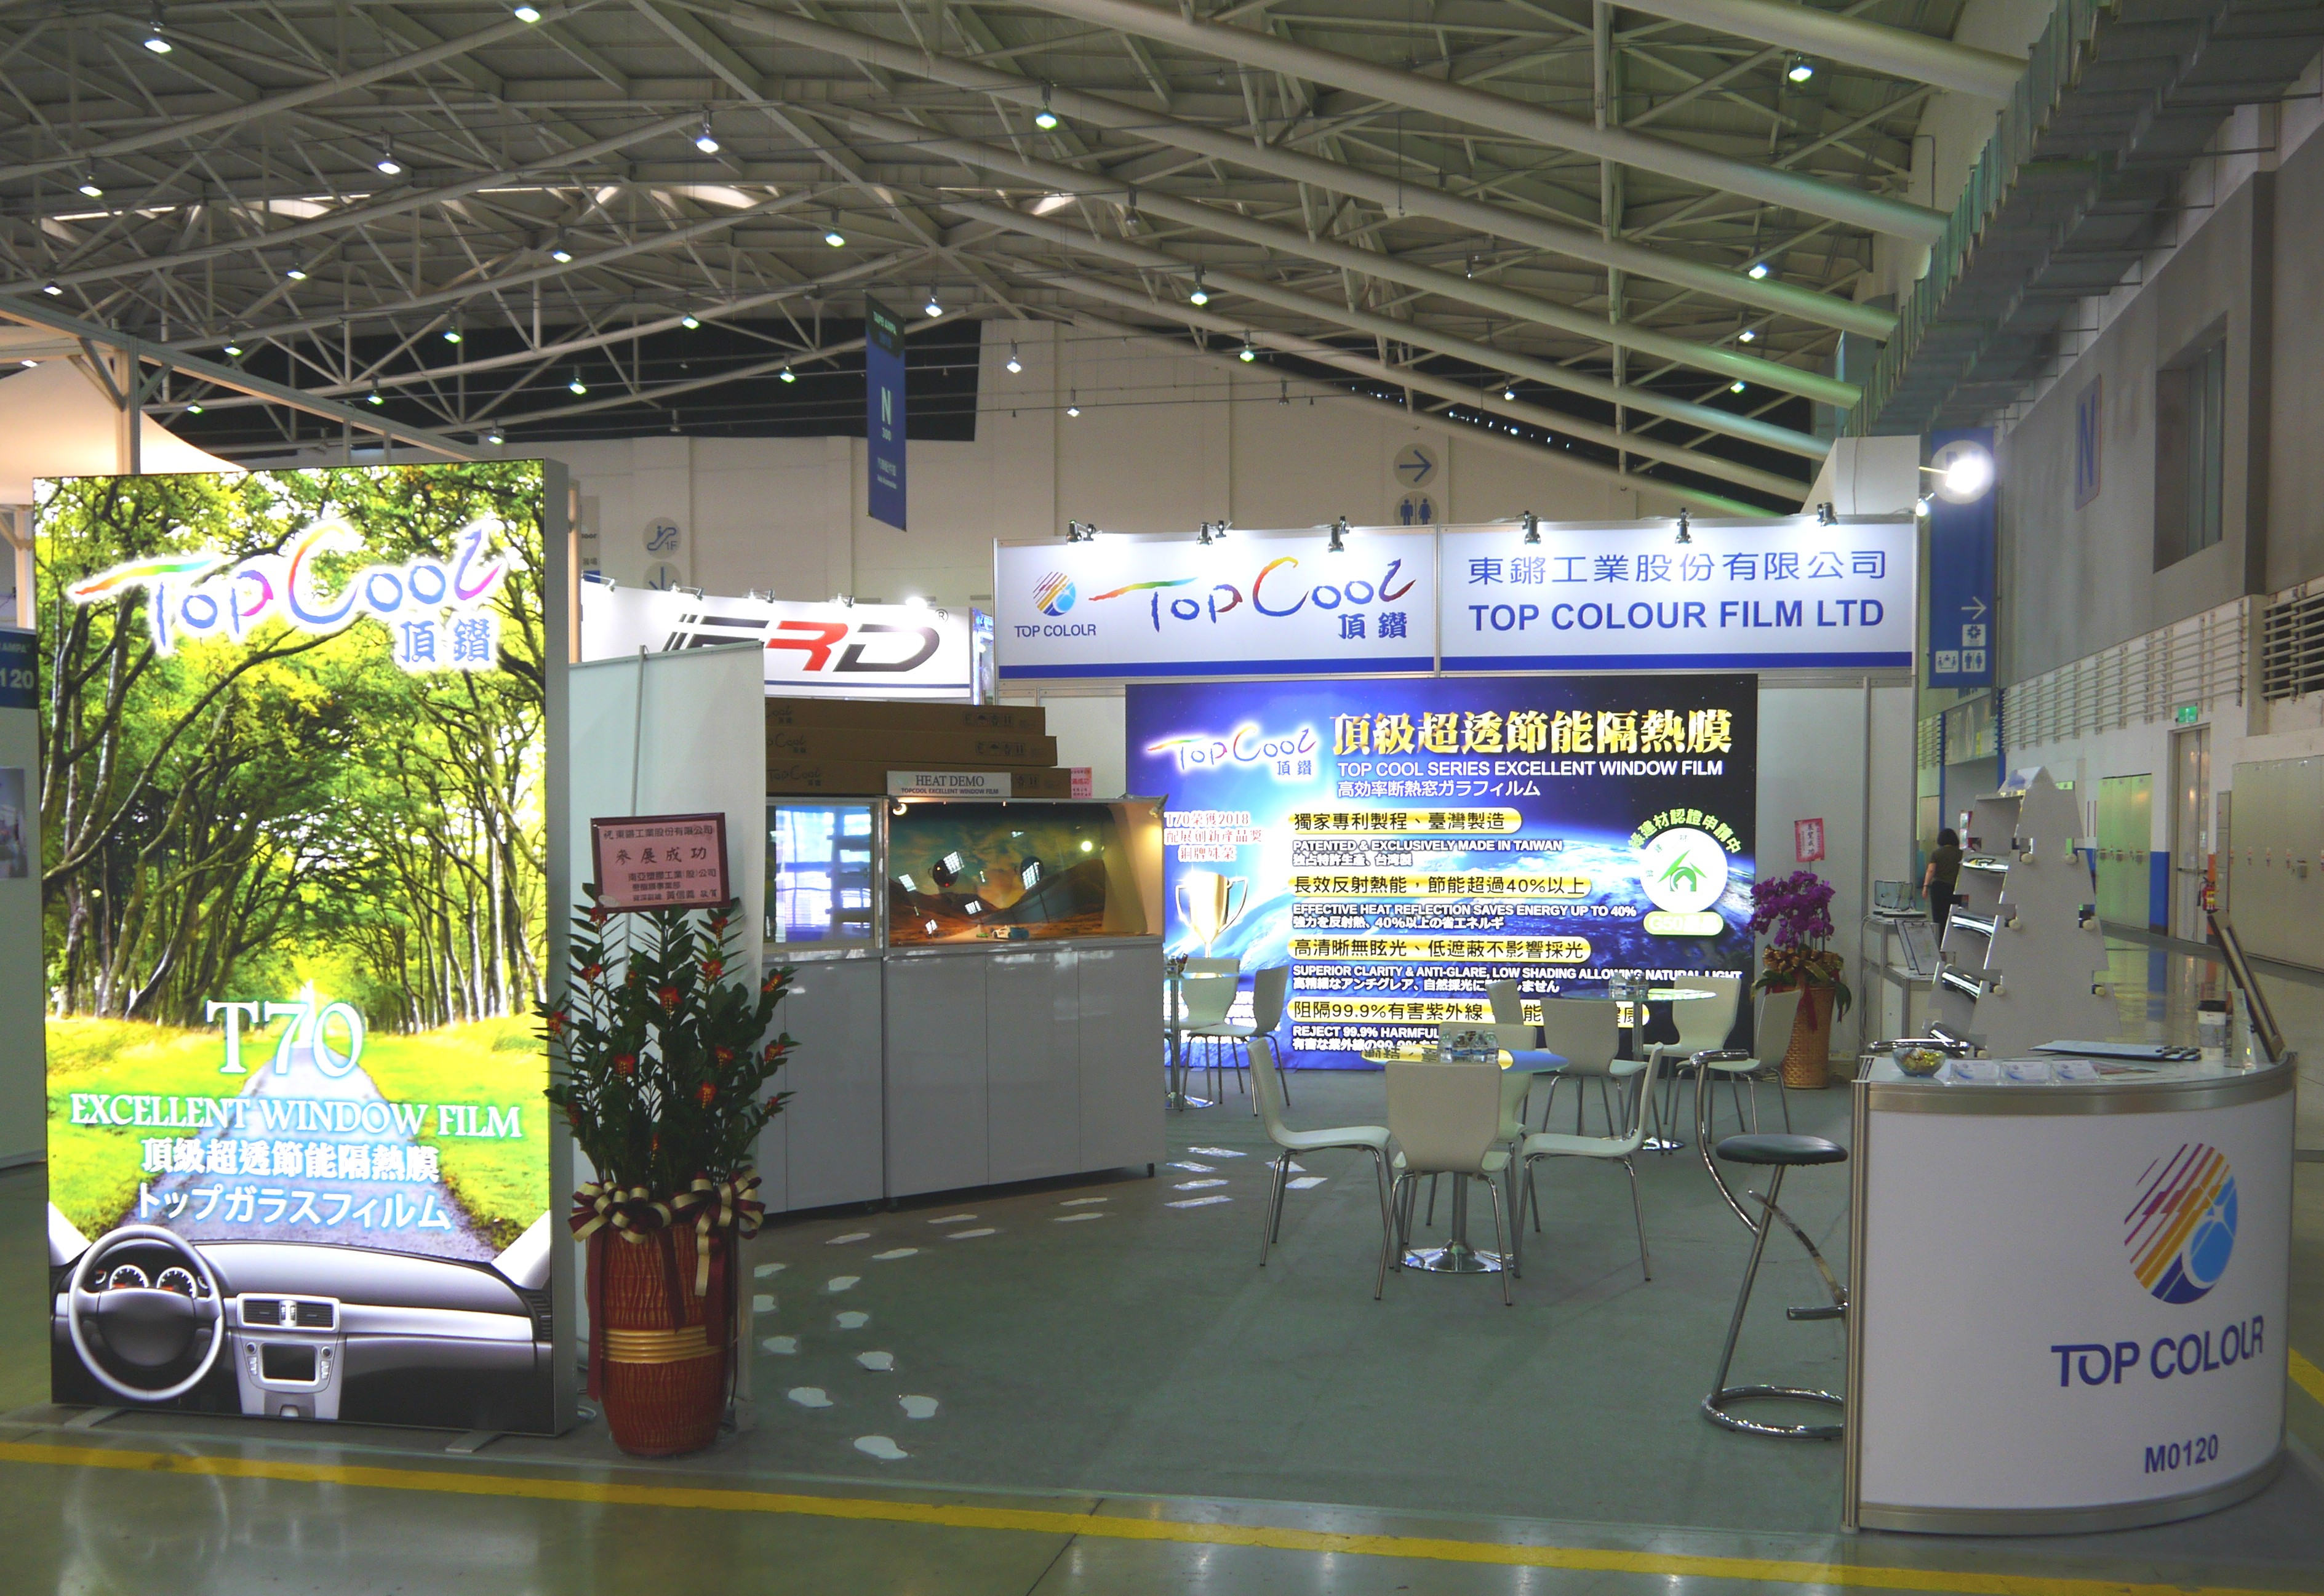 2018 Taipei AMPA Topcolour Booth with TopCool excellent window film simulator